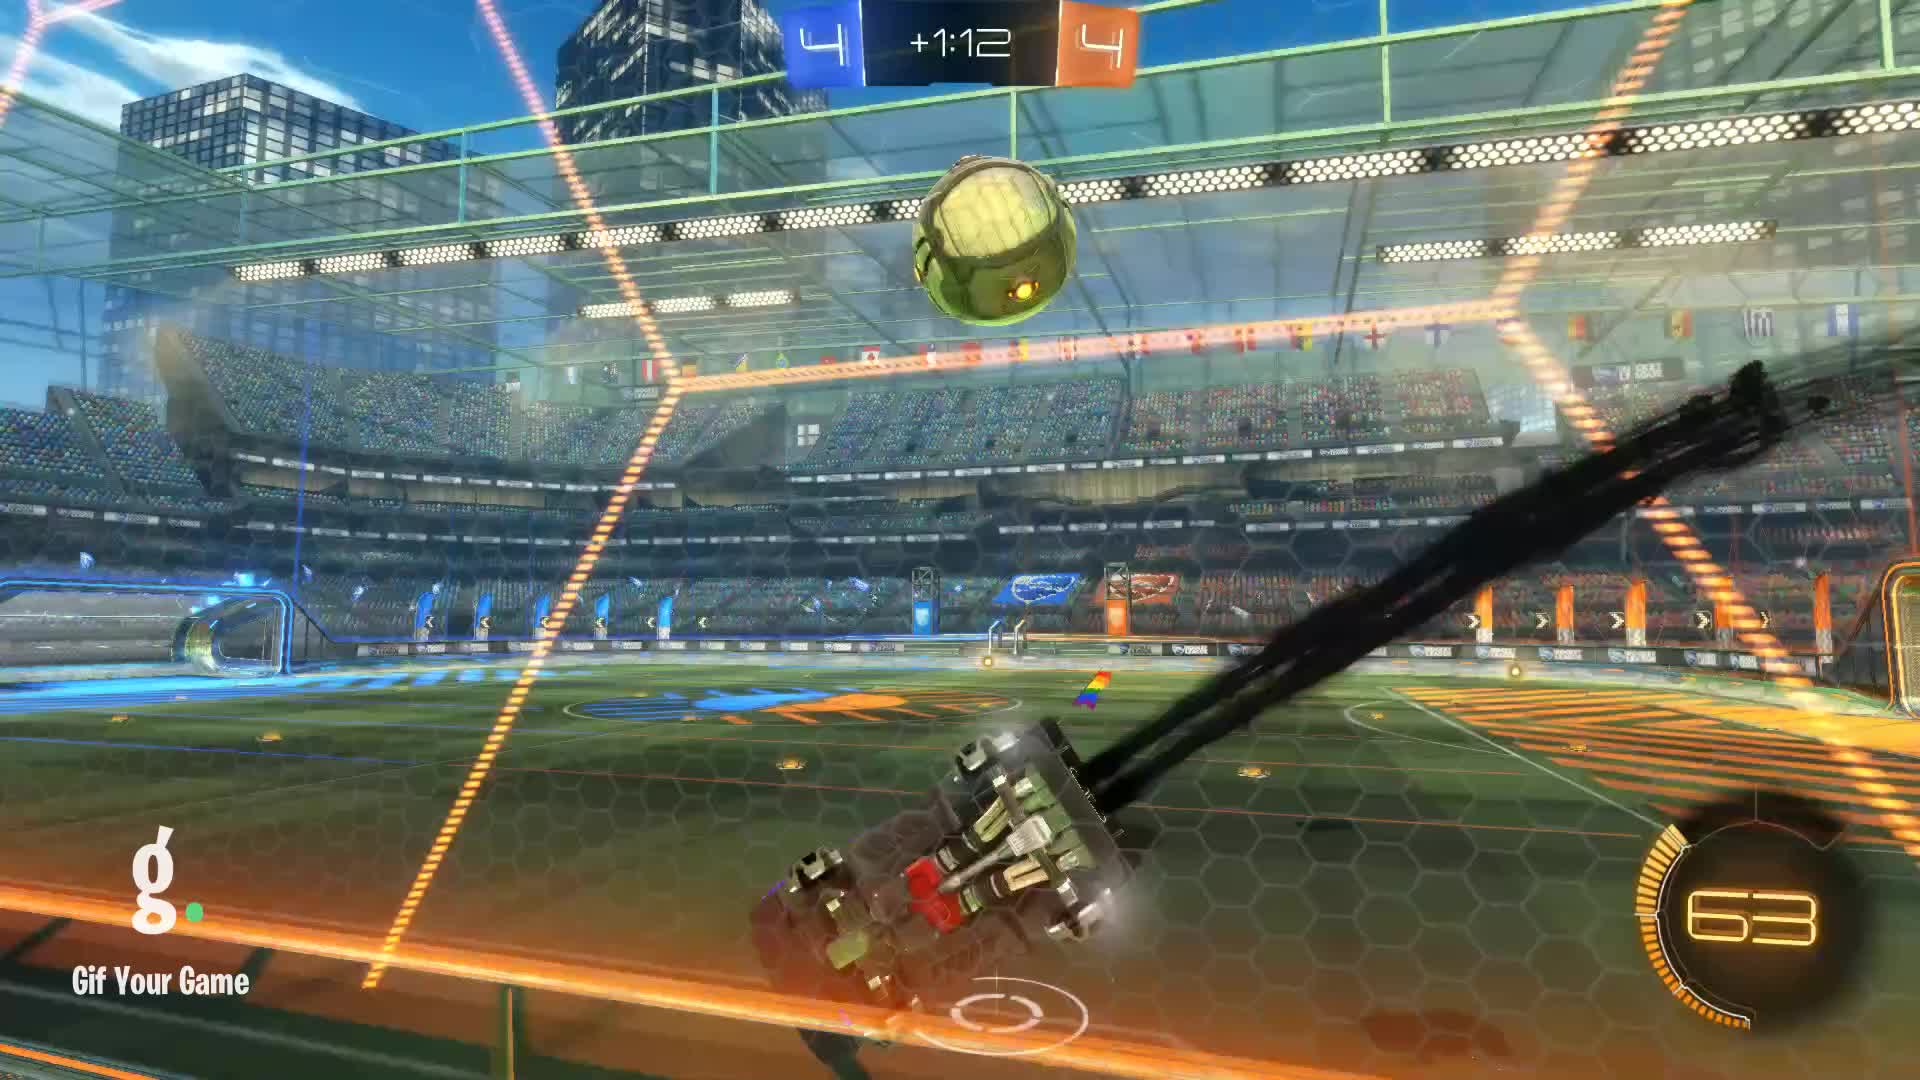 Btracker, Gif Your Game, GifYourGame, Goal, Rocket League, RocketLeague, Goal 9: Btracker GIFs